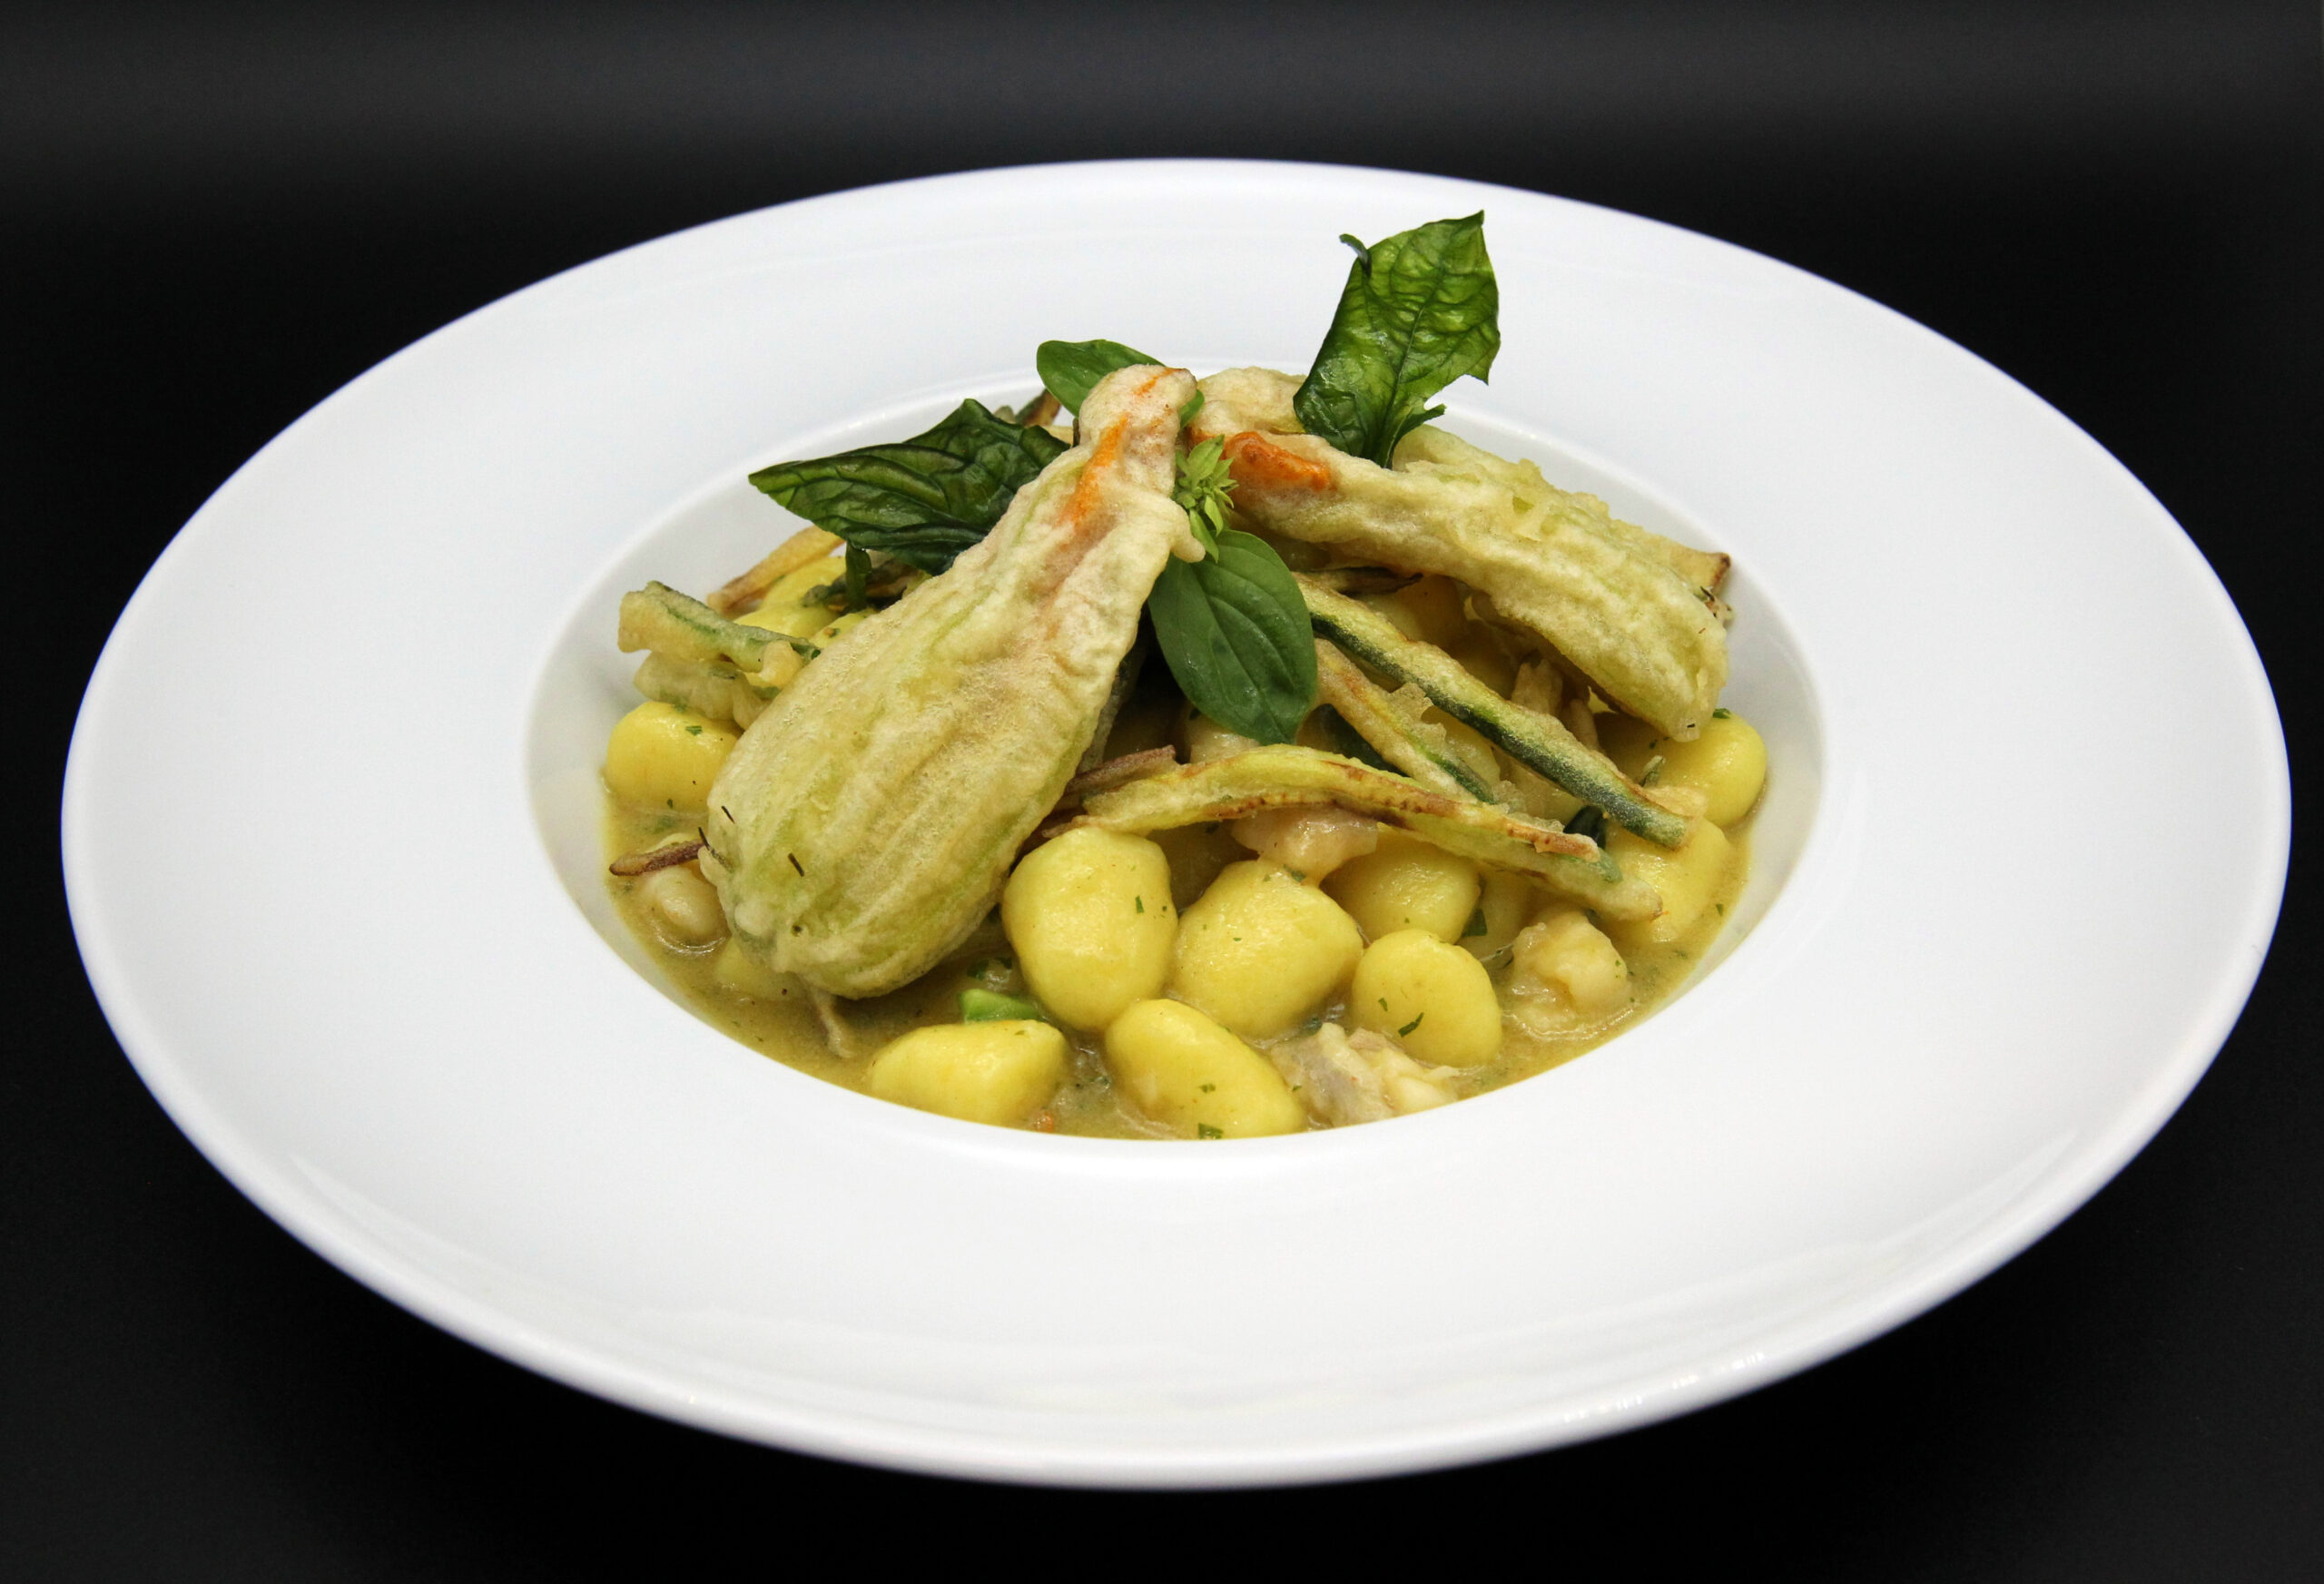 Potato dumplings with monkfish ragout, courgette flowers and fennel powder